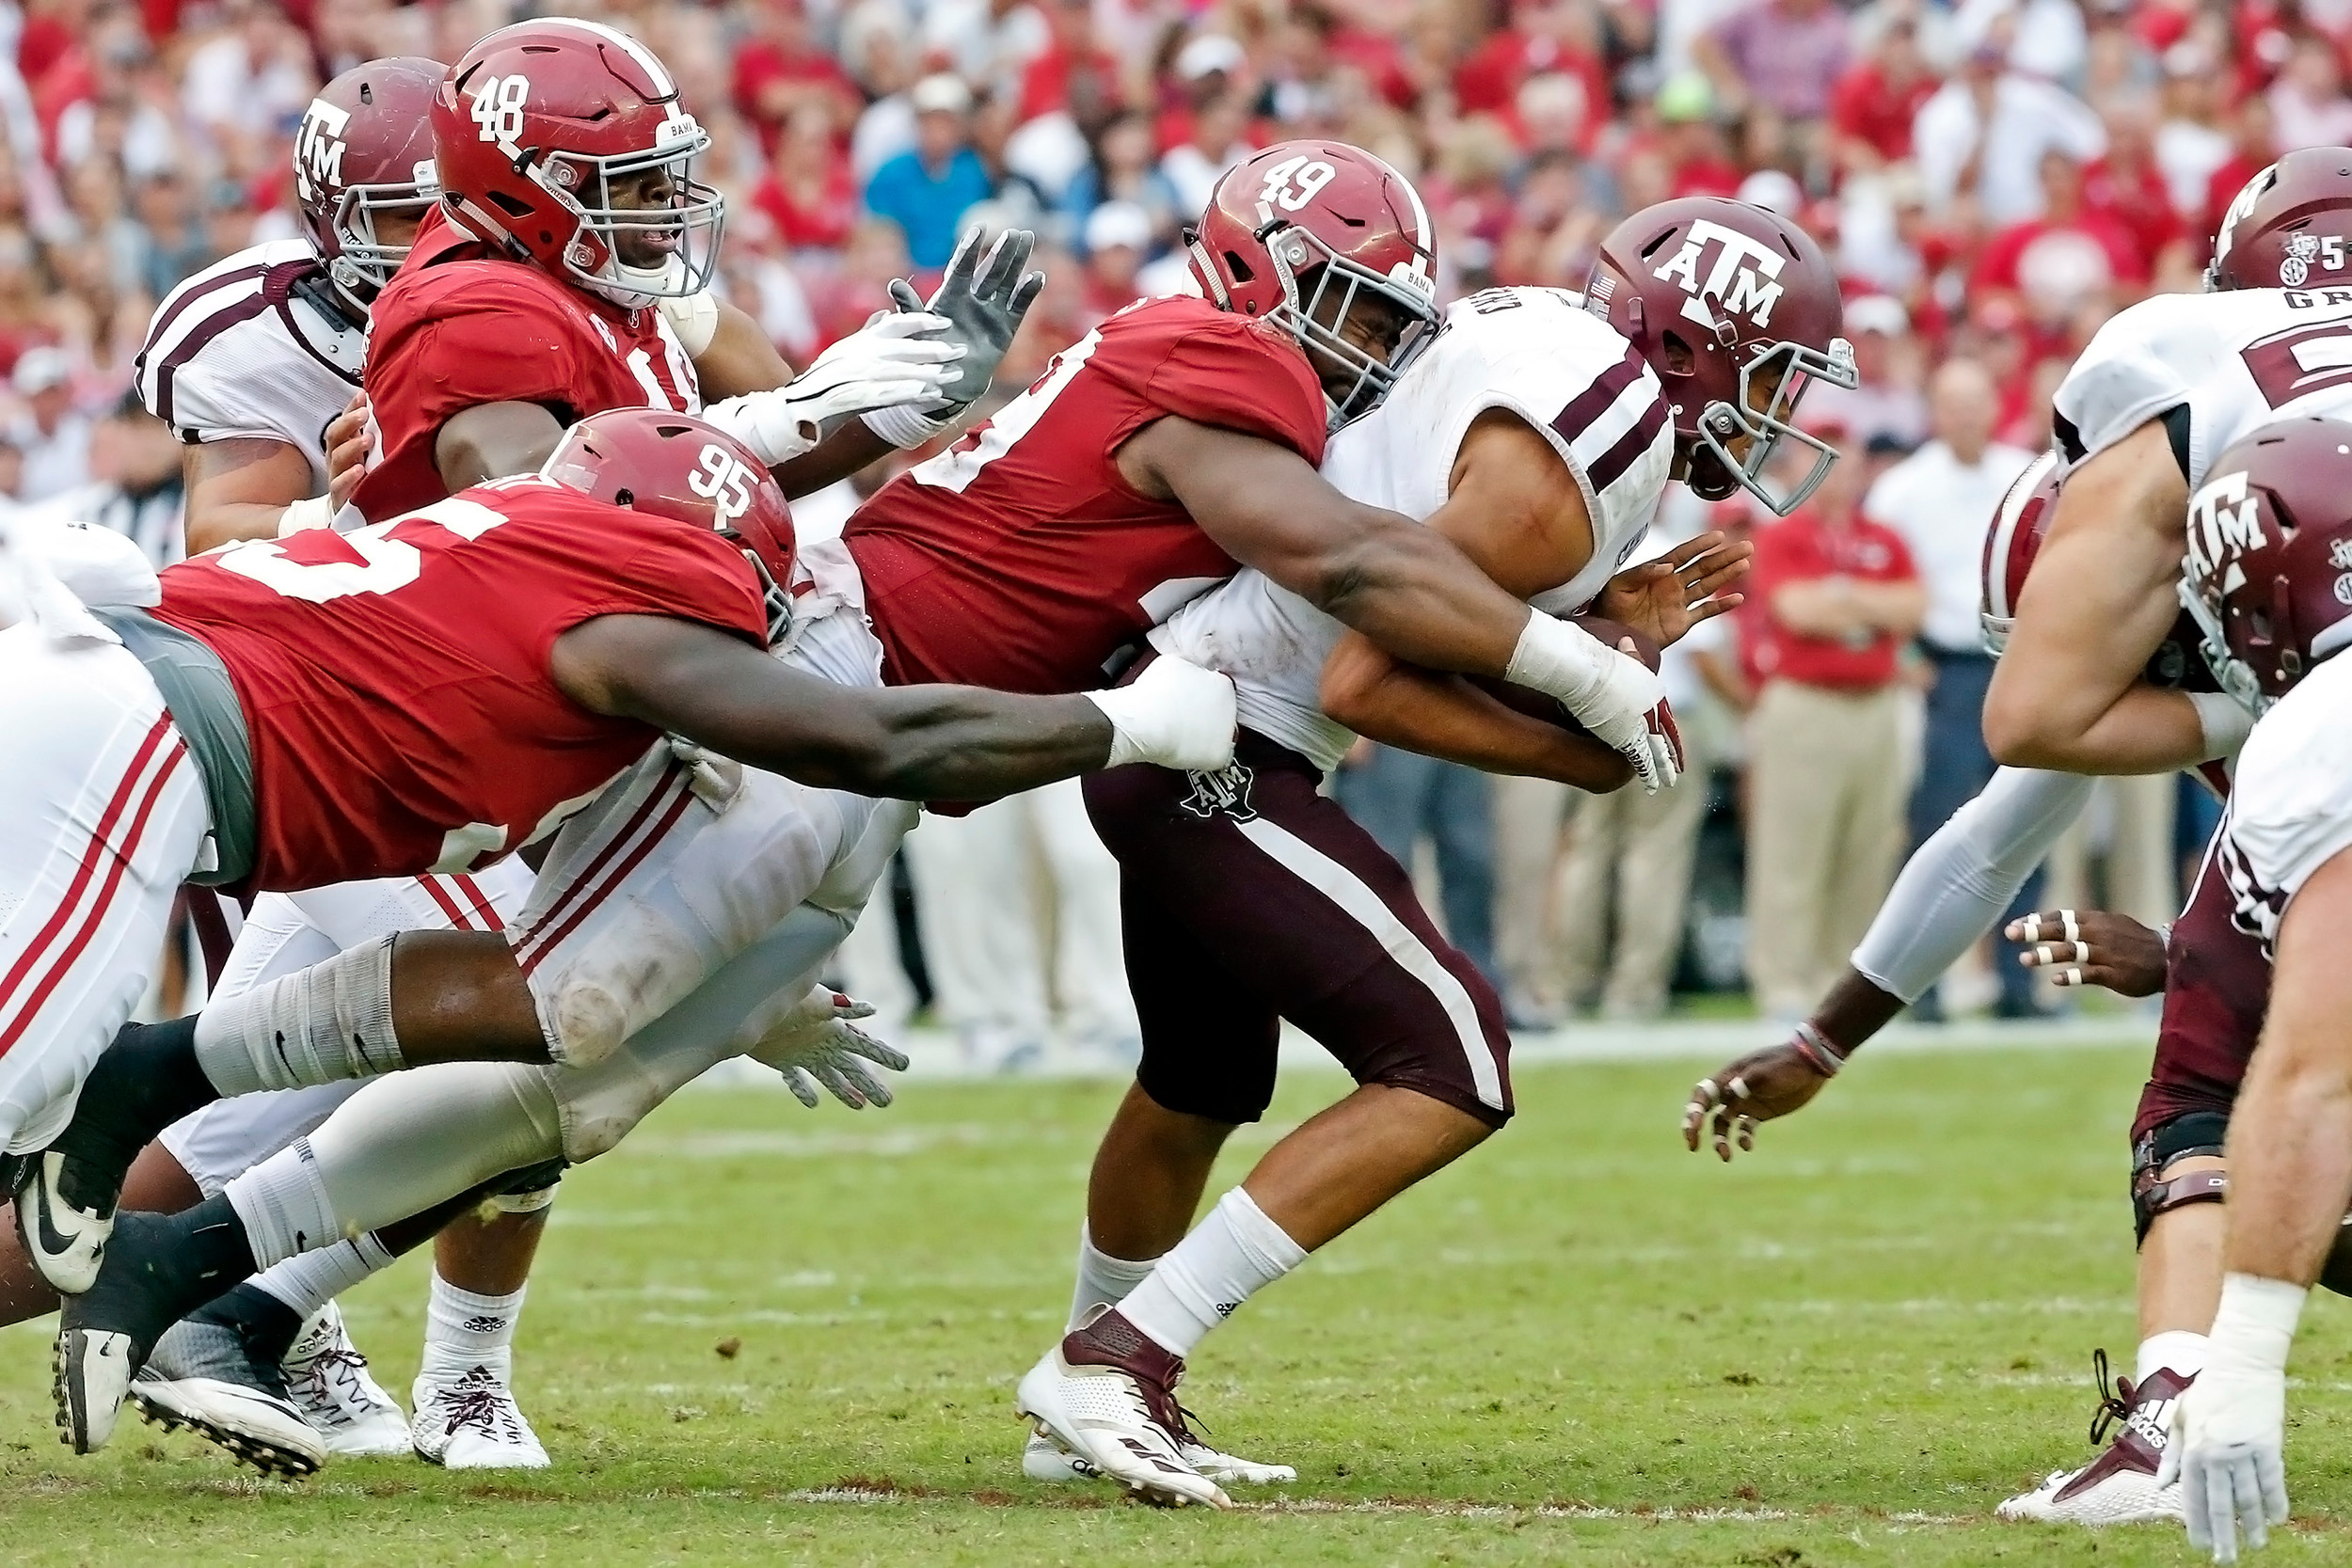 Alabama Crimson Tide defensive lineman Isaiah Buggs (49) tackles Texas A&M Aggies quarterback Kellen Mond (11) during the game with against the Texas A&M Aggies at Bryant-Denny Stadium.  Jason Clark / Daily Mountain Eagle